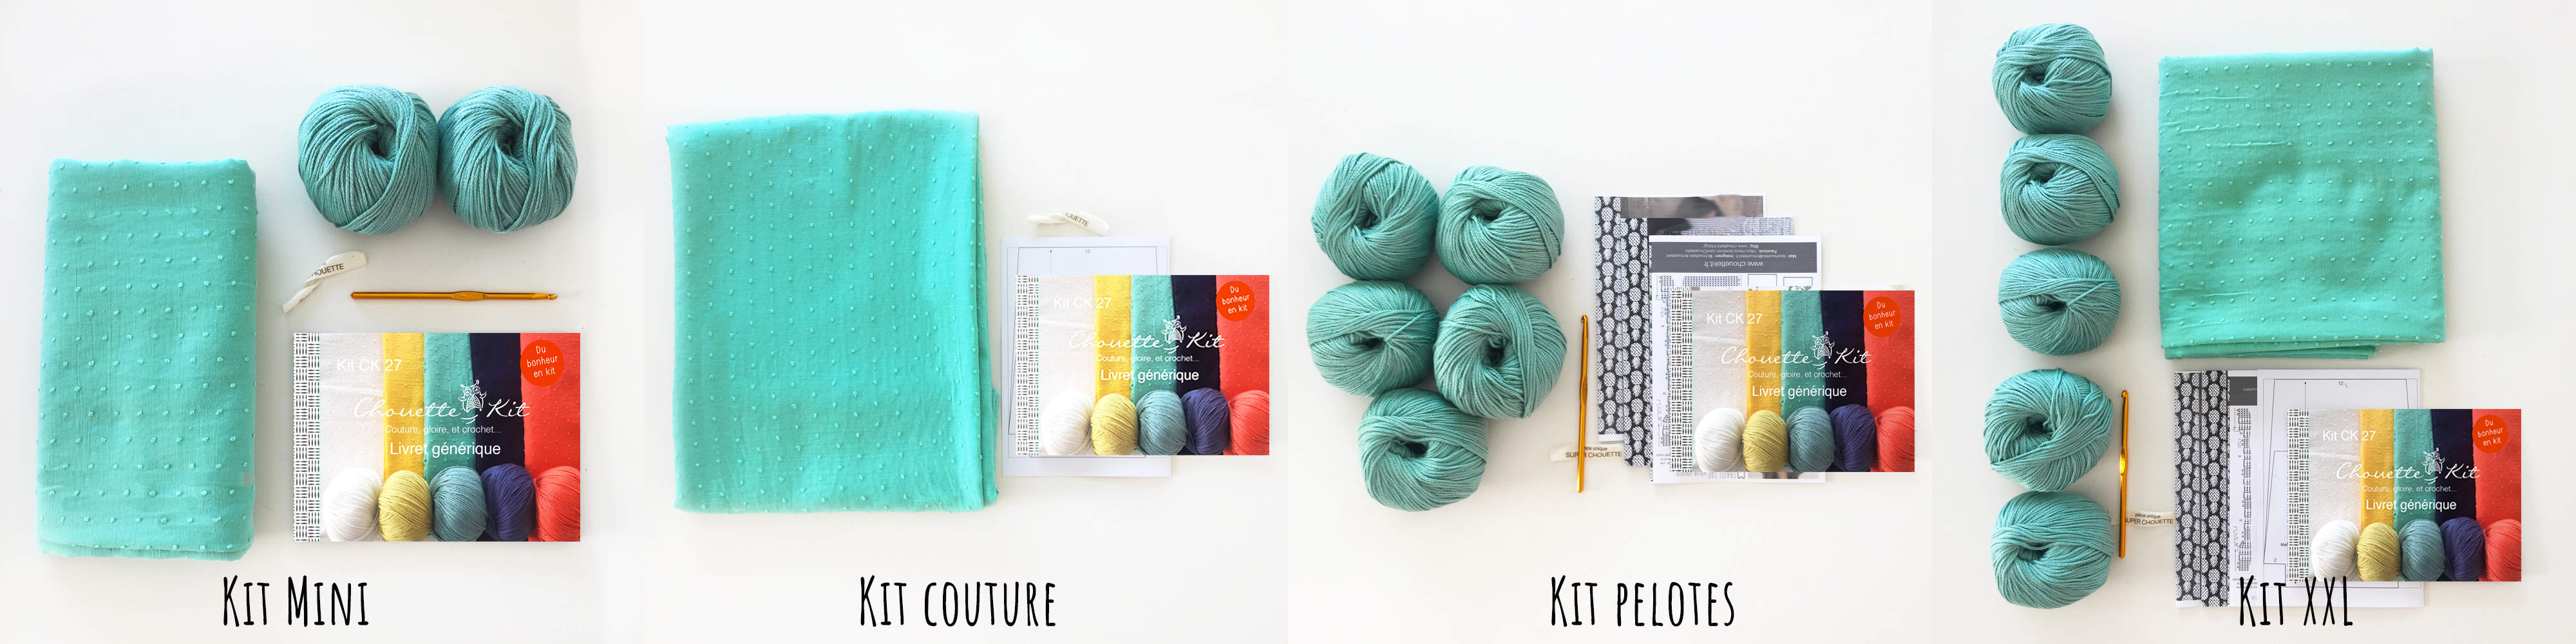 taille-kits-1000